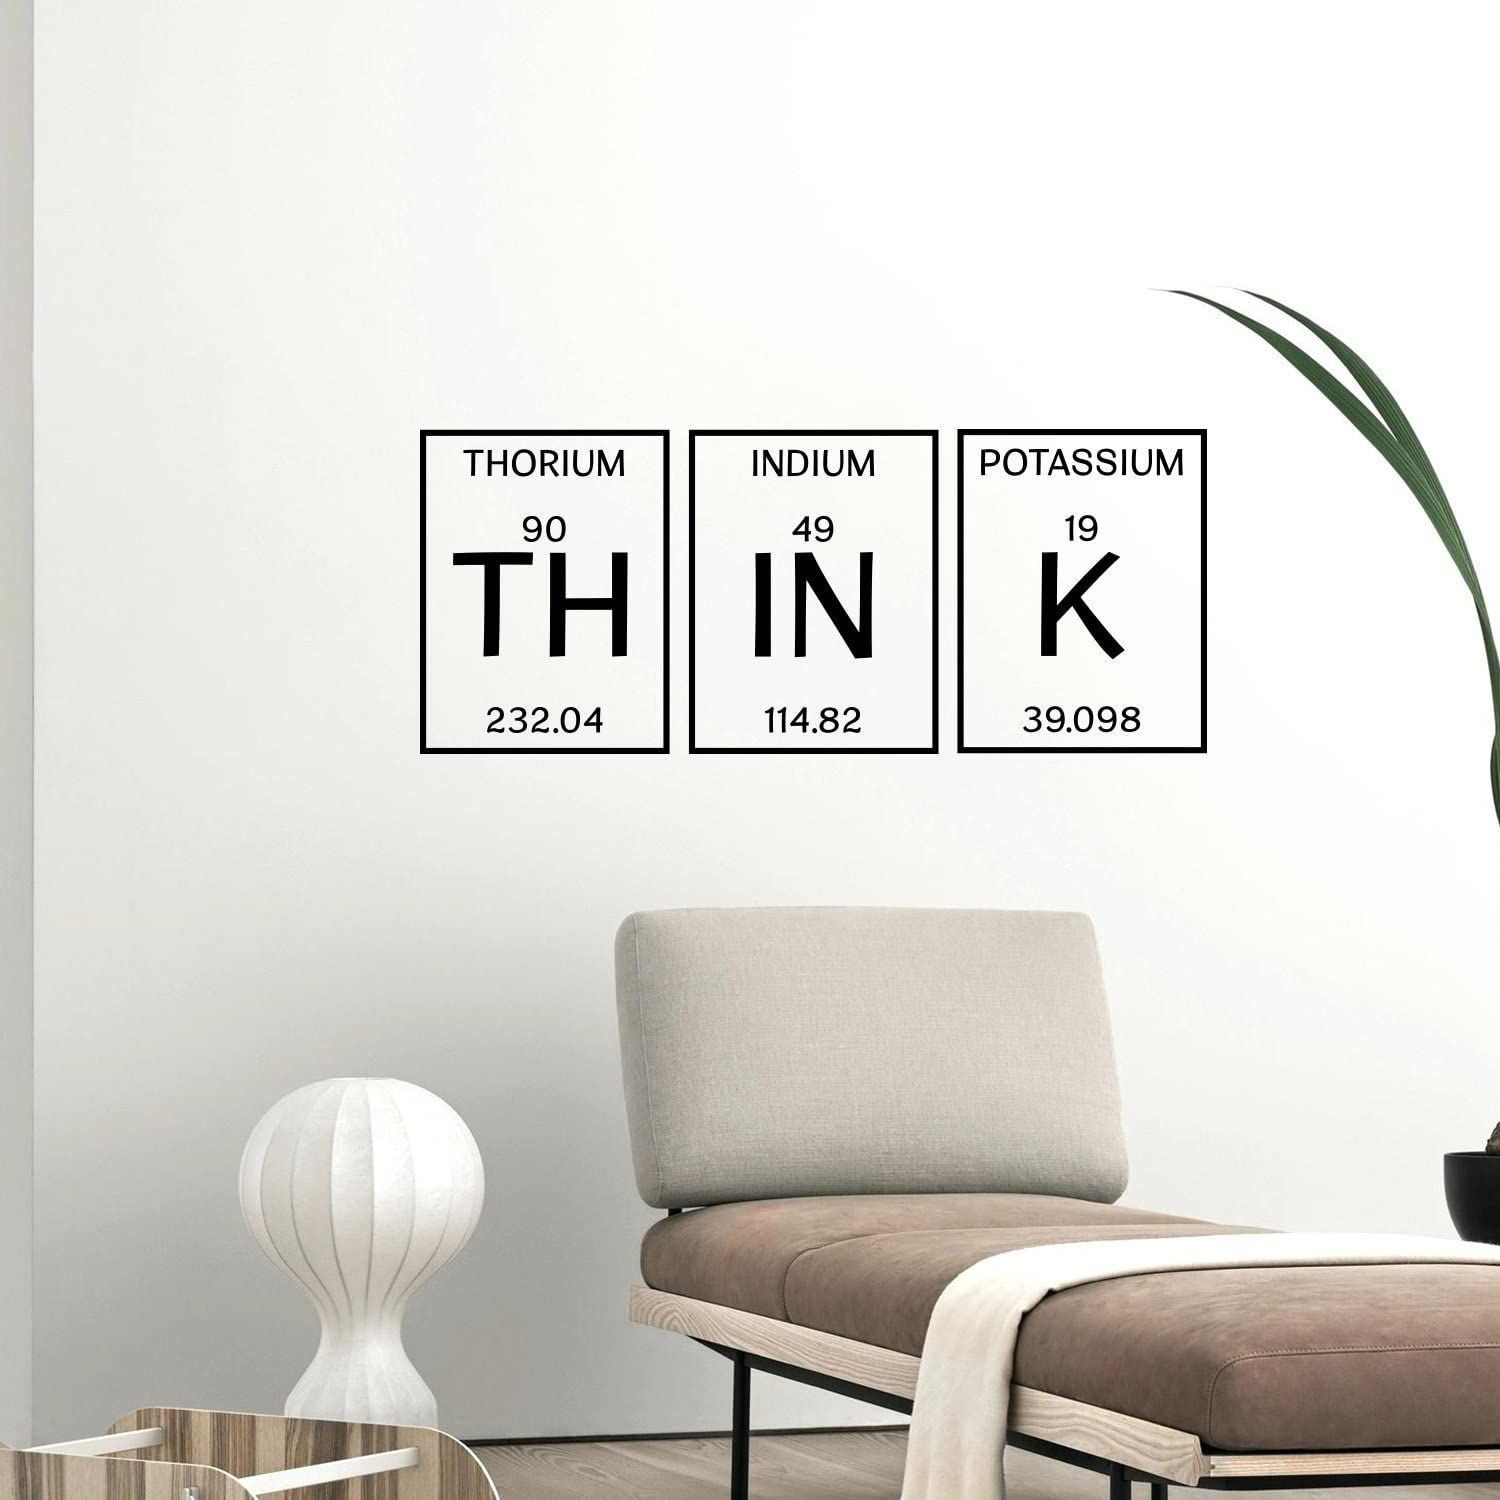 "Wall Art Vinyl Decal - 'Think' Word Lettering - 13"" x 32"" Inspirational Wall Art Decor - Scientfic Educational Sticker Decals Periodic Table of Elements Living Room Bedroom Wall Decor"